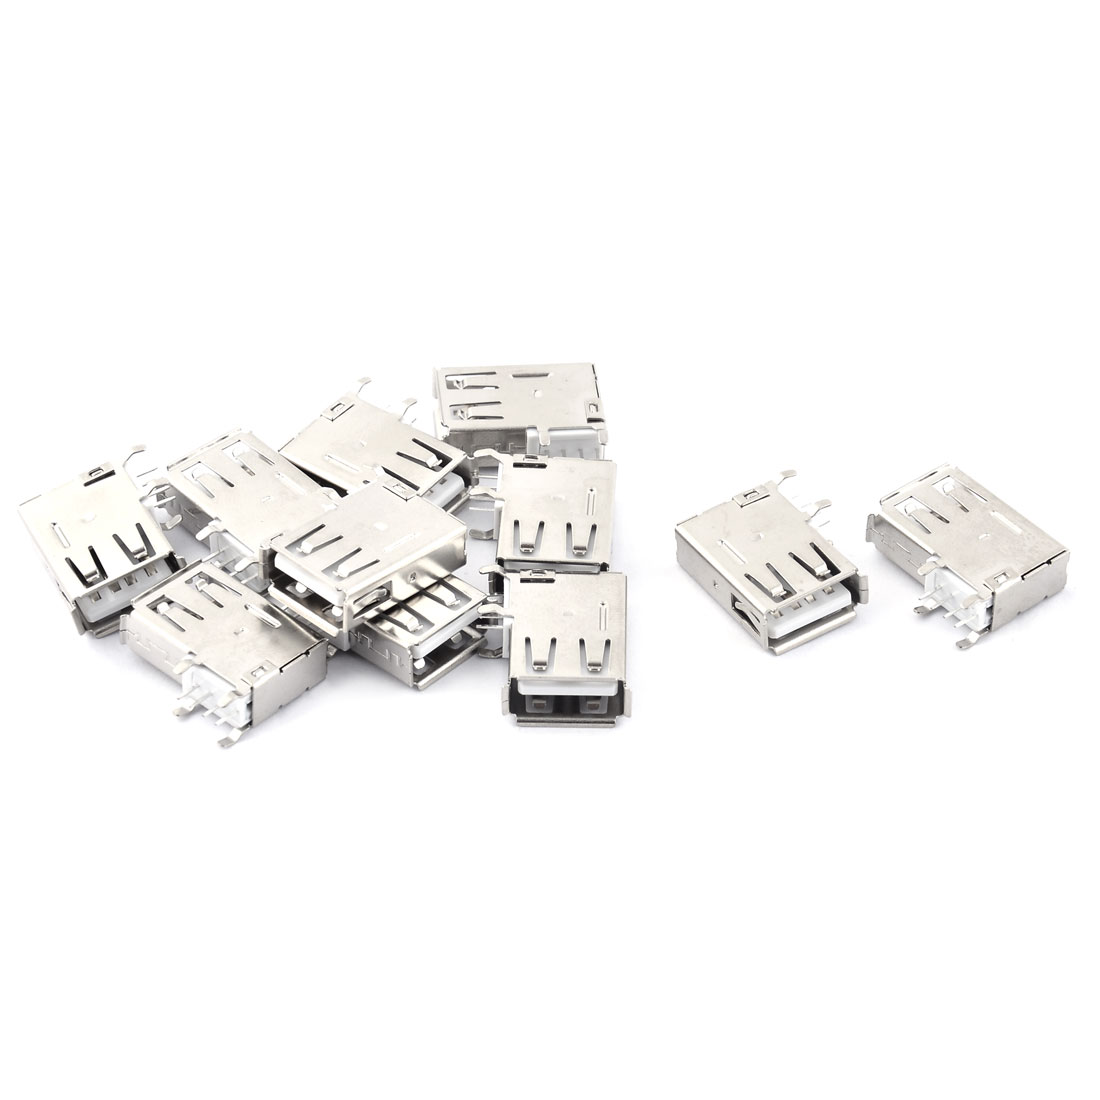 4Pin 90 Degree Side DIP USB Female Type A USB Jack Socket Connector 11 PCS